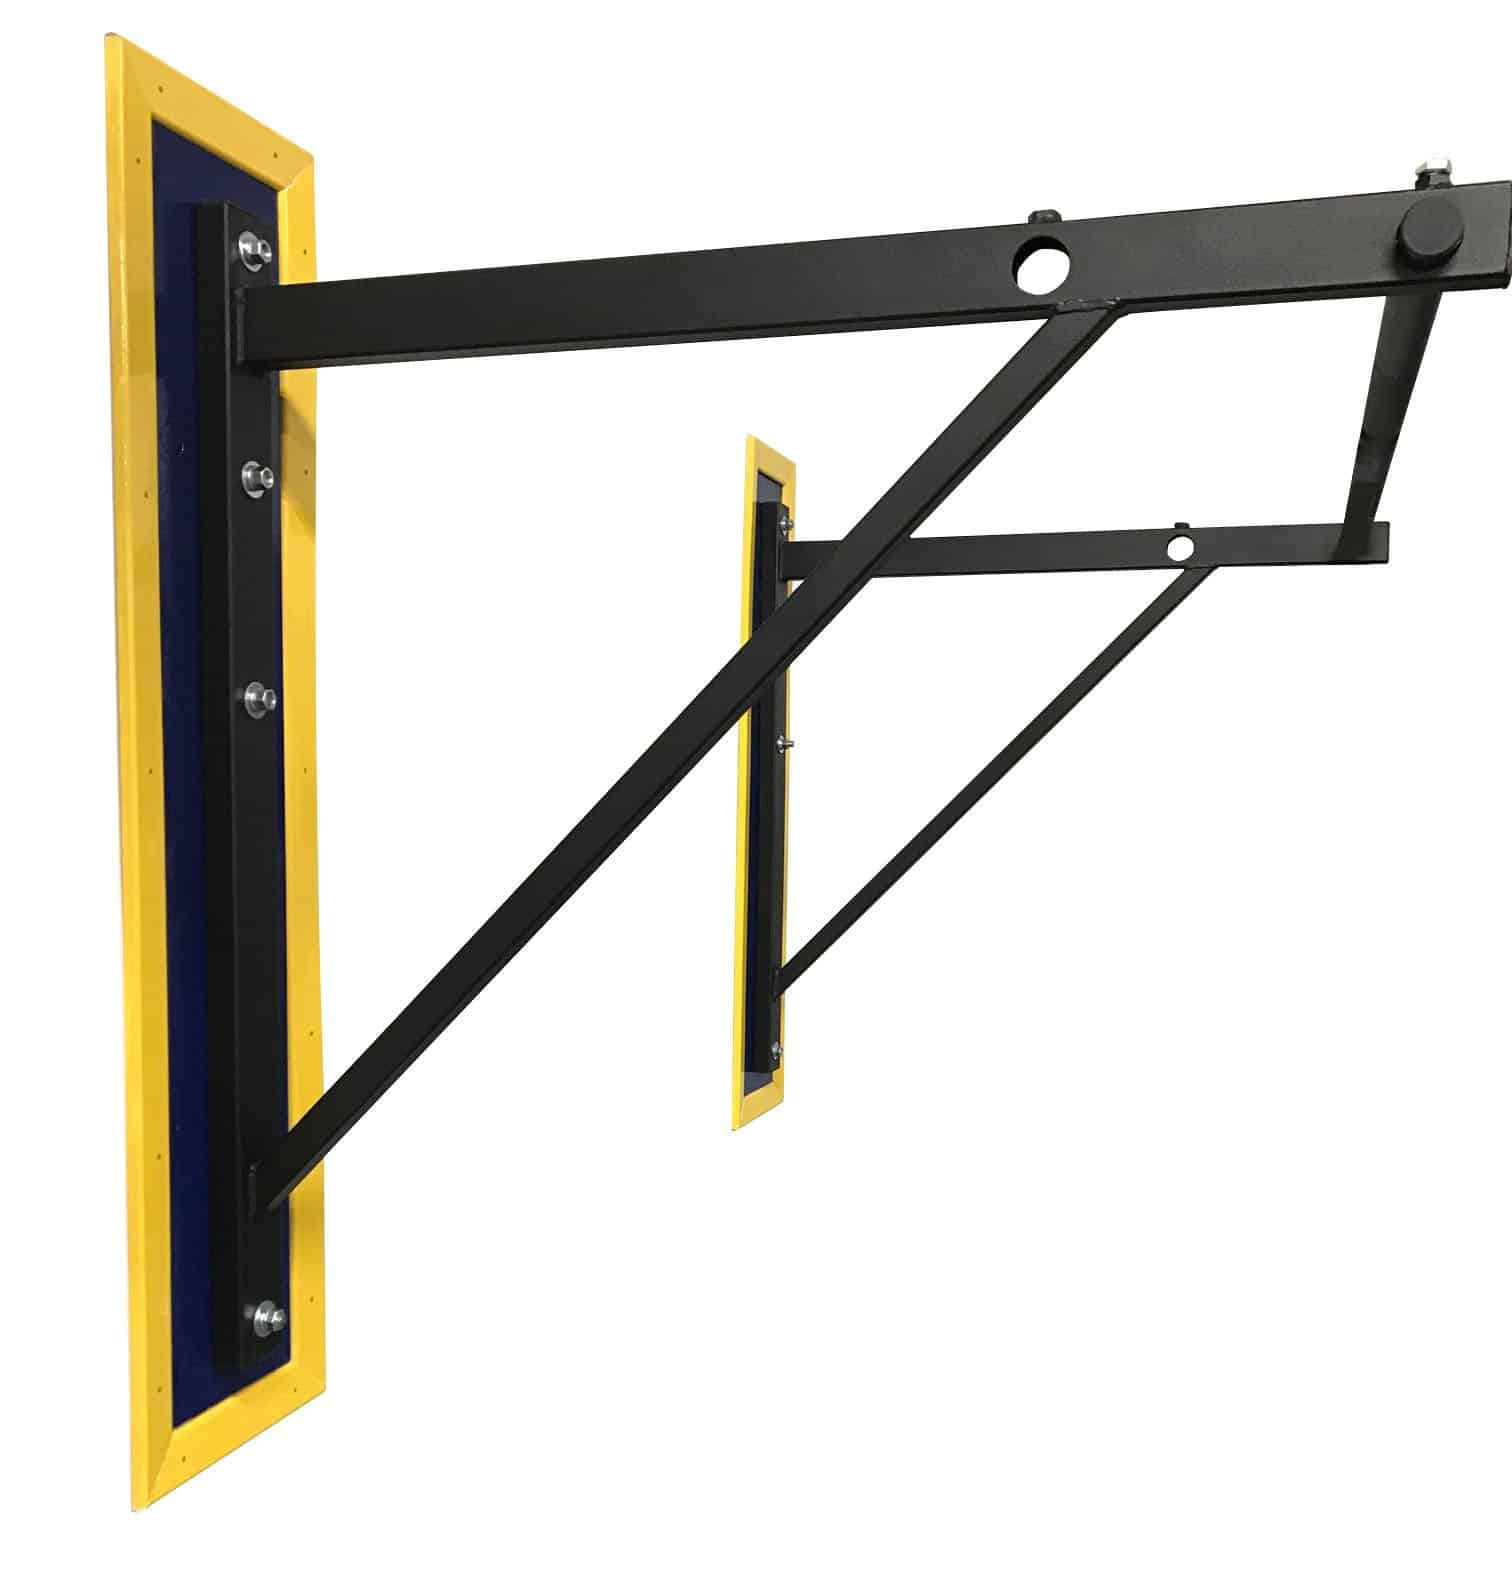 Wall or Ceiling Mounted Pull Up Bar